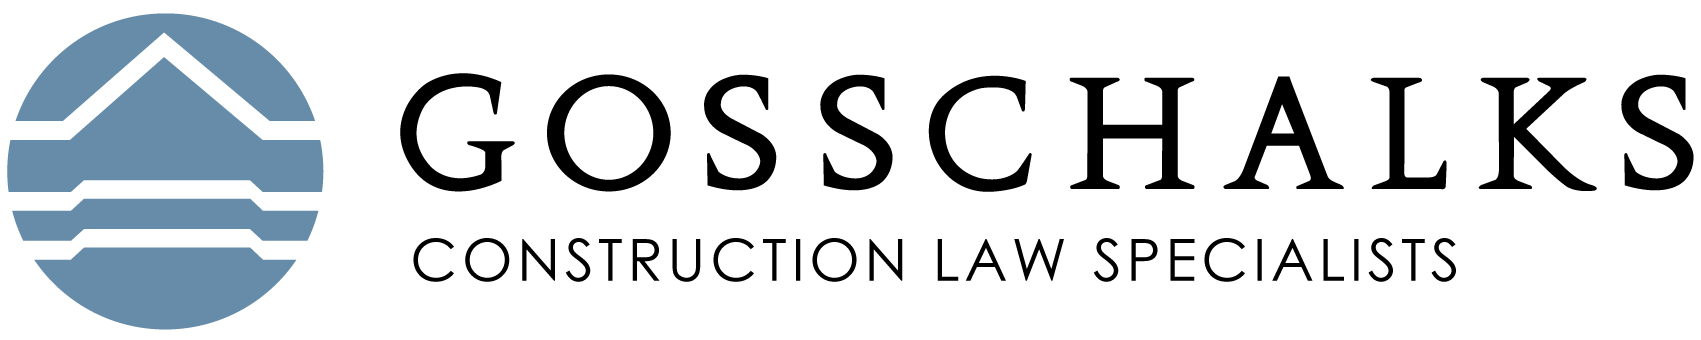 Gosschalks-Construction-Law